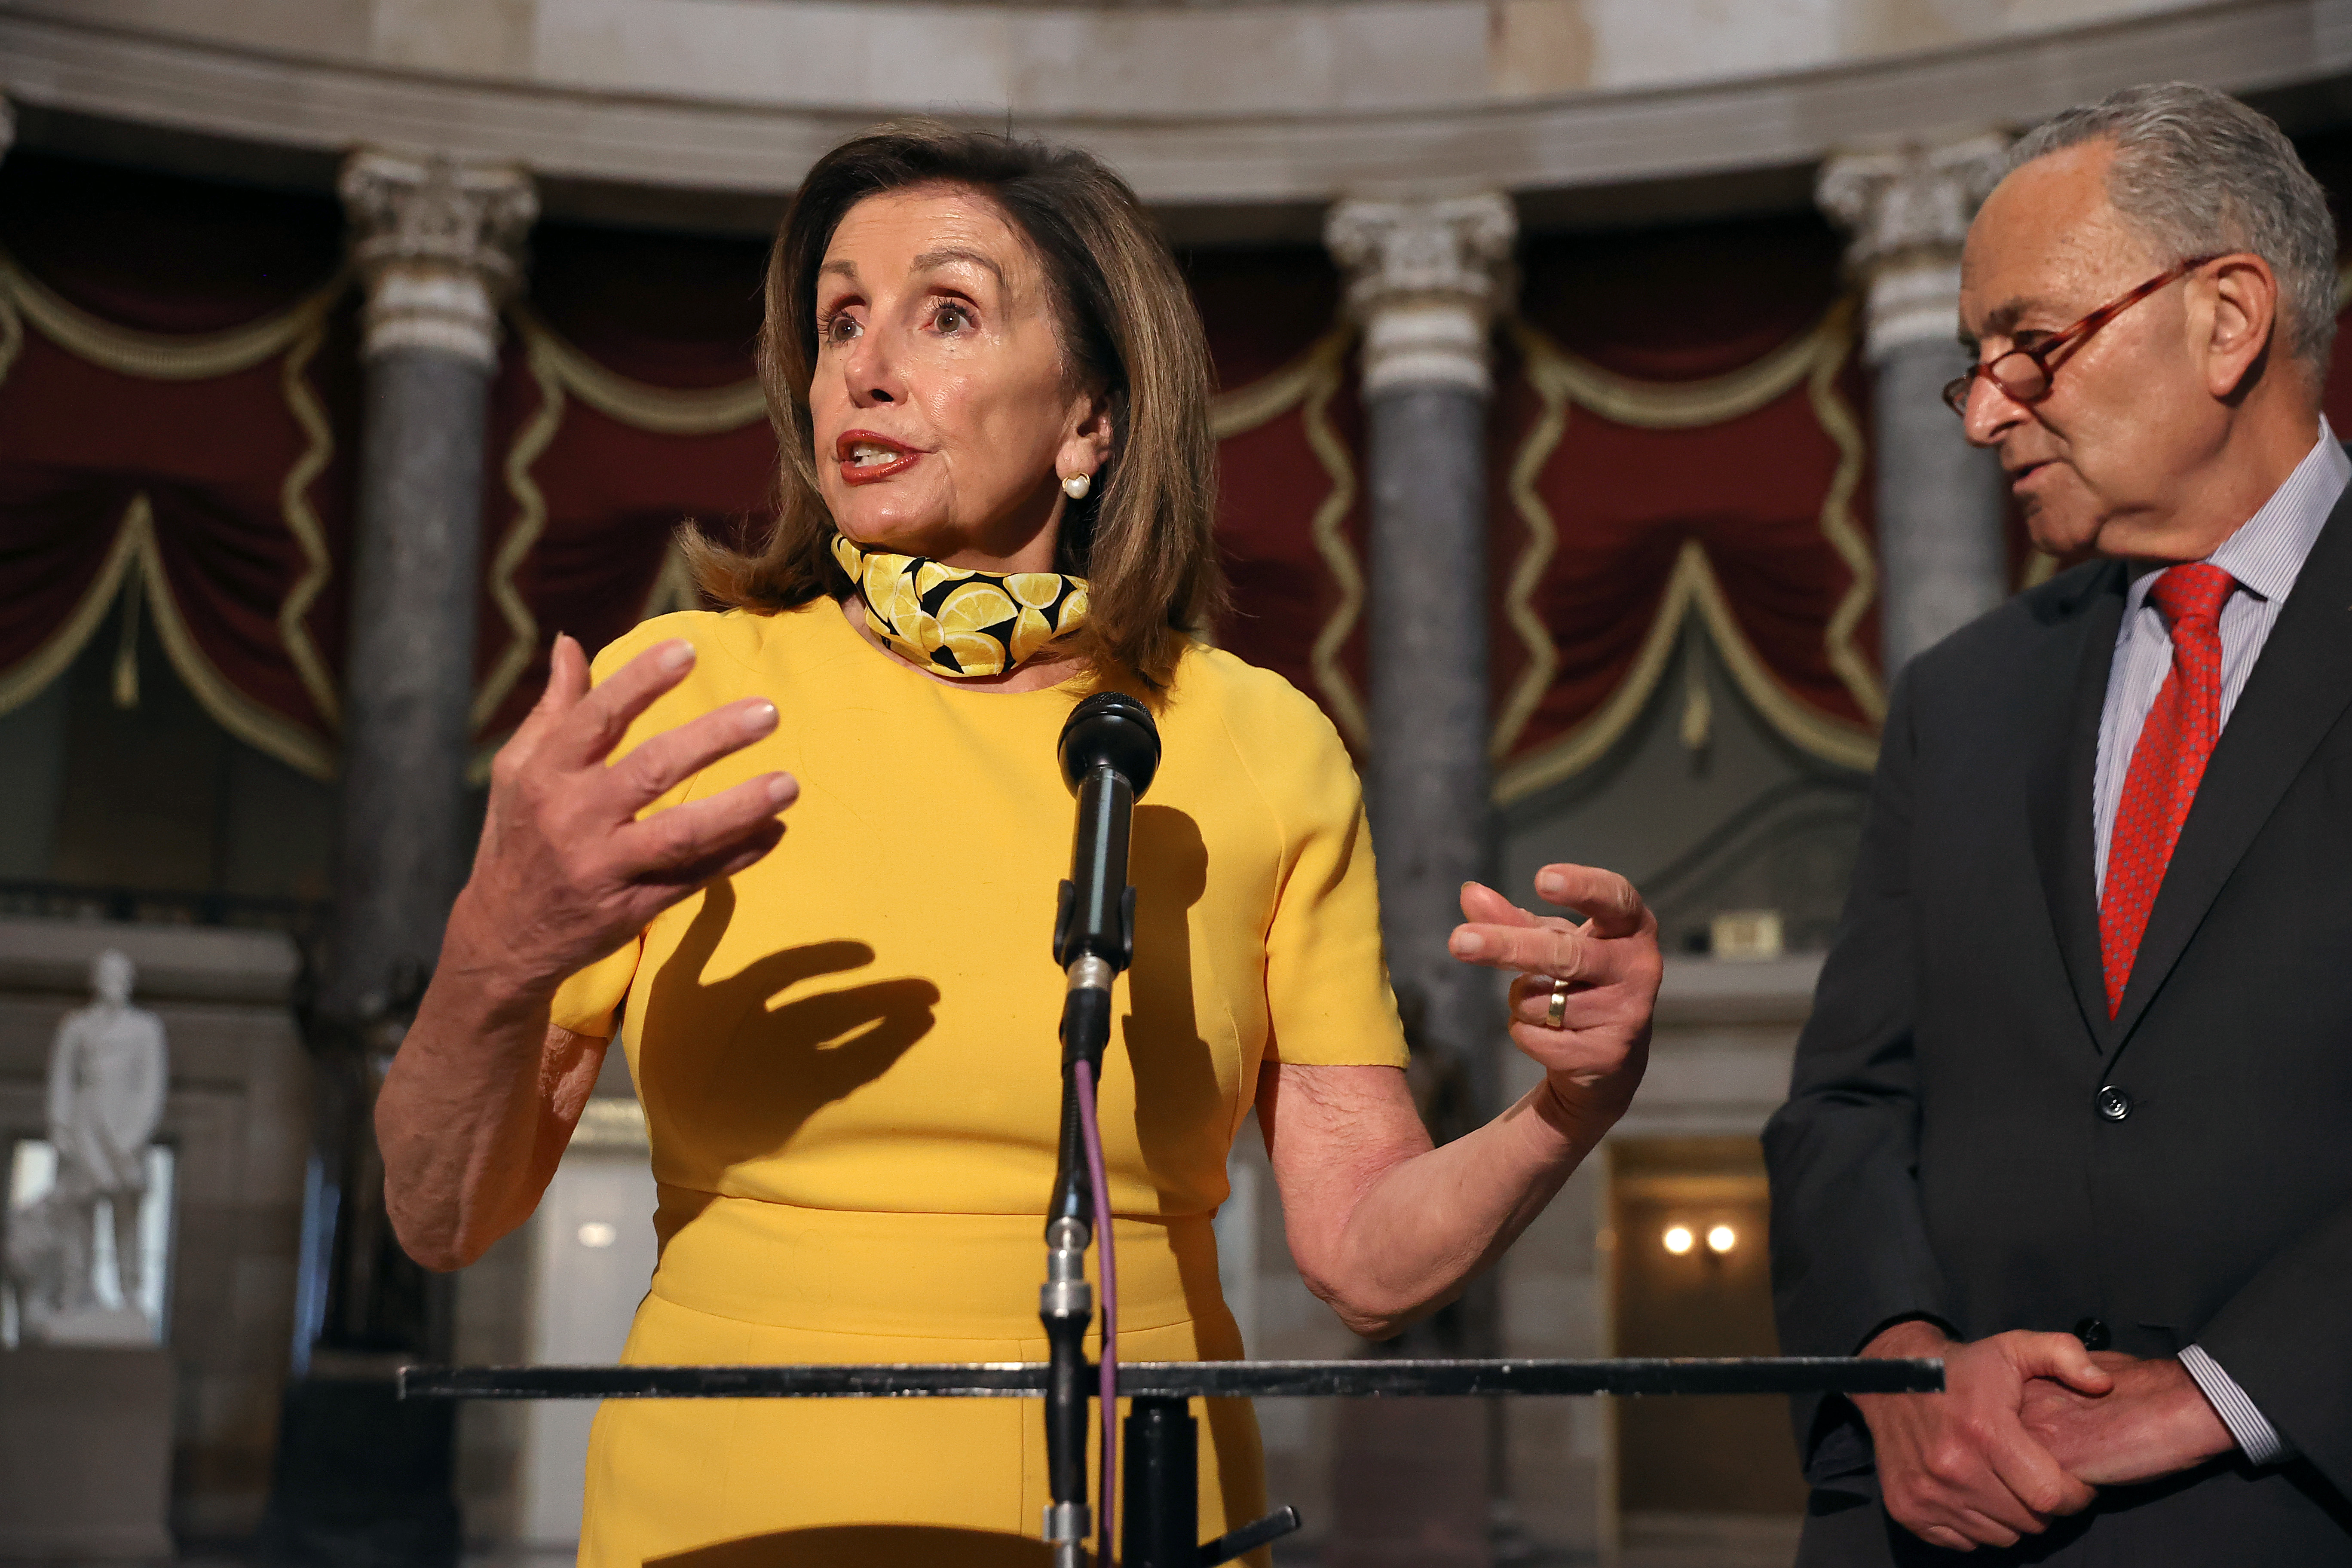 WASHINGTON, DC - AUGUST 03: Speaker of the House Nancy Pelosi (D-CA) and Senate Minority Leader Charles Schumer (D-NY) talk with reporters in Statuary Hall in the U.S. Capitol August 03, 2020 in Washington, DC. Negotiations between Pelosi, Schumer, White House Chief of Staff Mark Meadows and Treasury Secretary Steven Mnuchin continued Monday but they did not reach an agreement on how to move forward on a new relief package to help people and businesses weather the COVID-19 pandemic. (Photo by Chip Somodevilla/Getty Images)